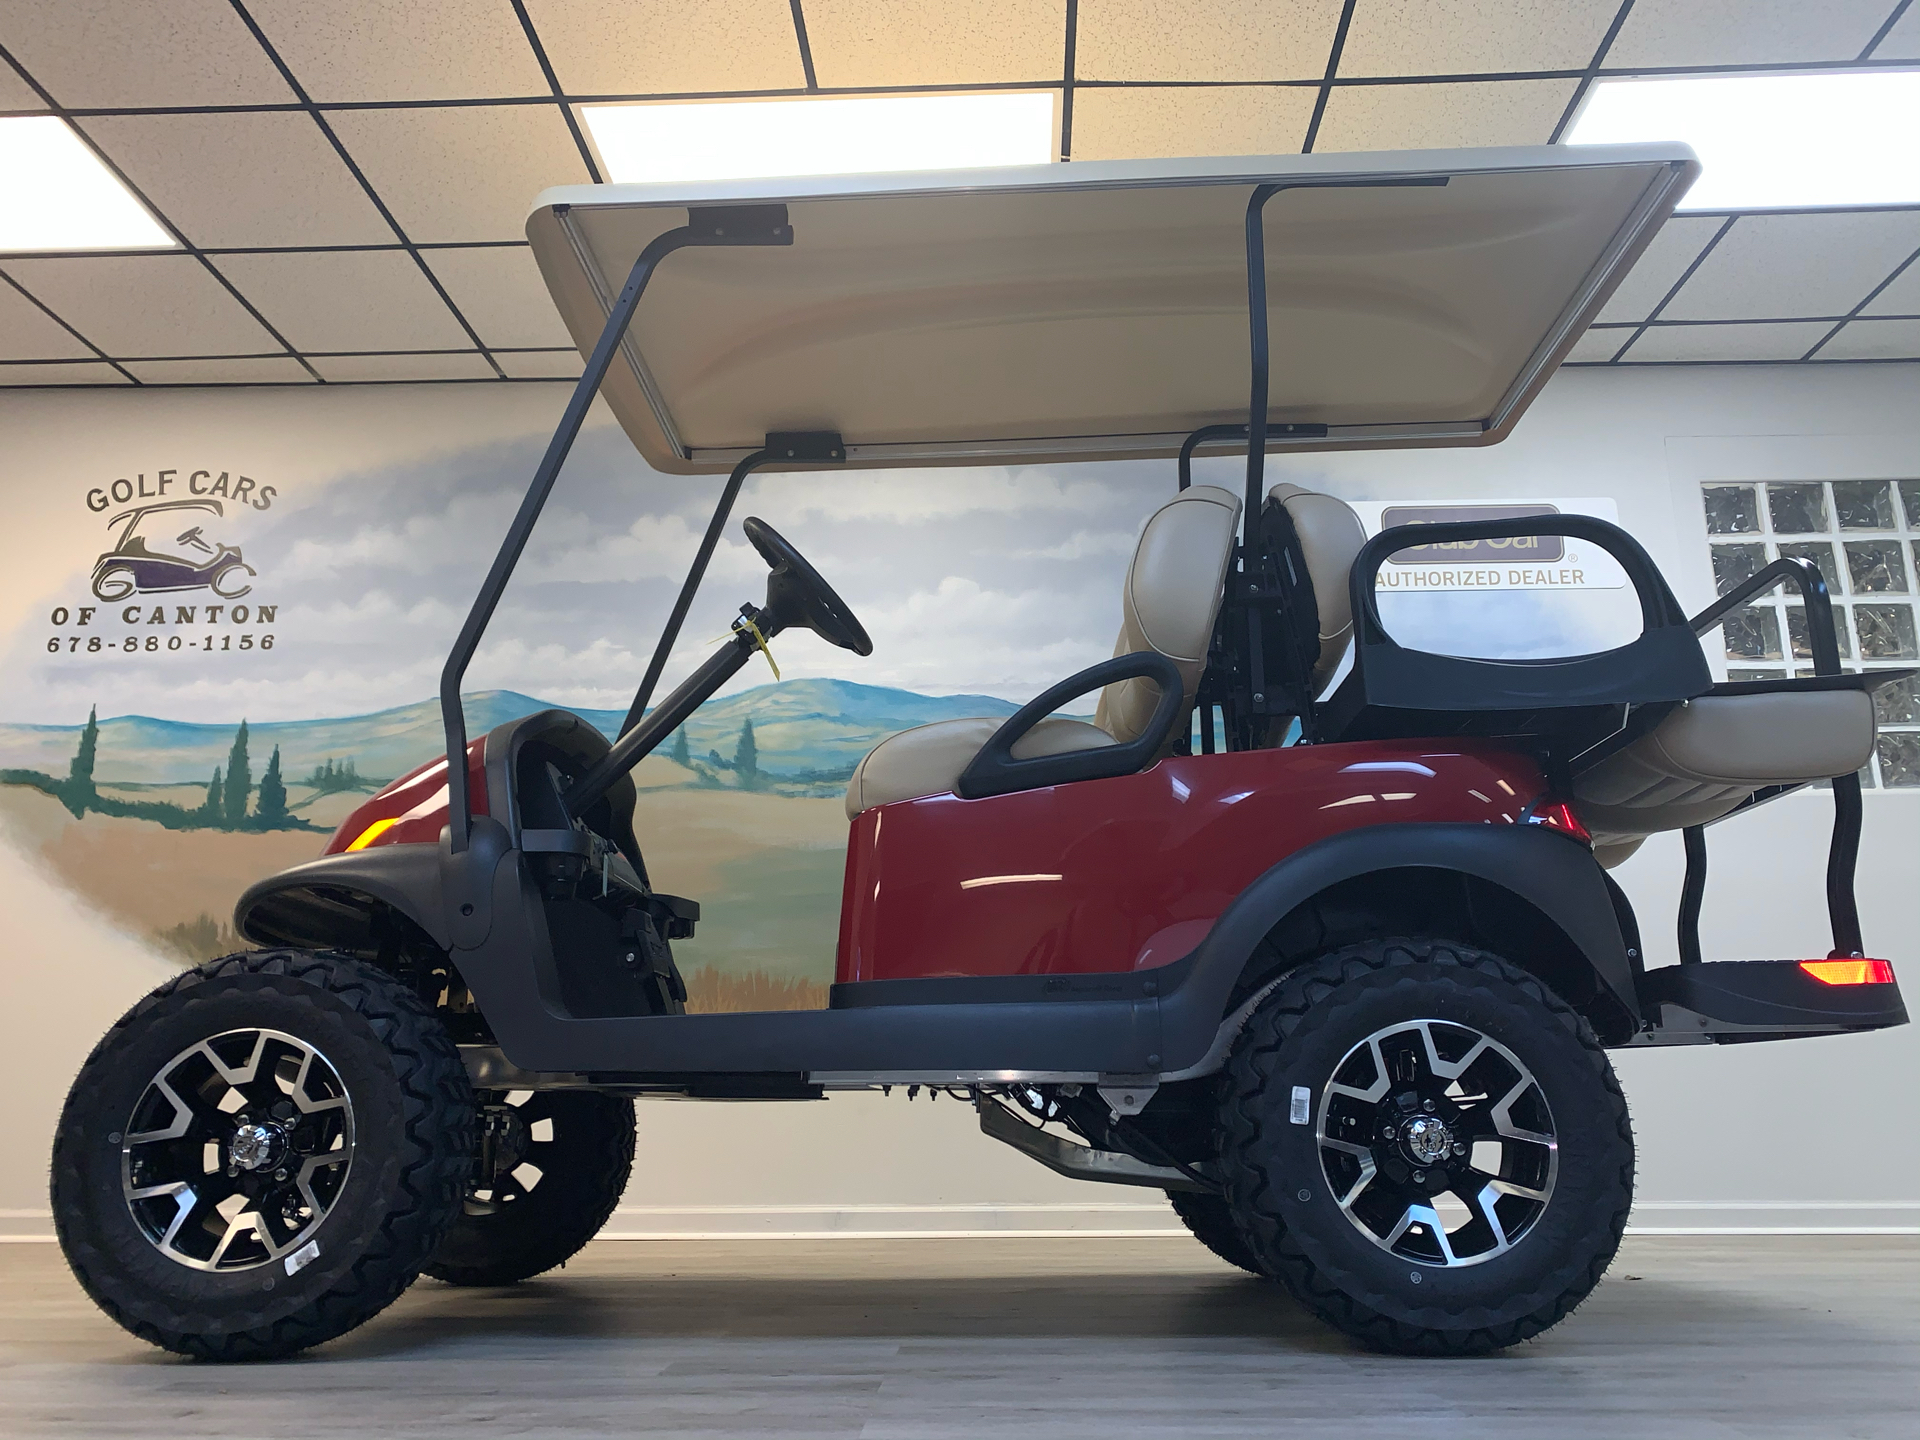 2021 Club Car V4L Gas in Canton, Georgia - Photo 14